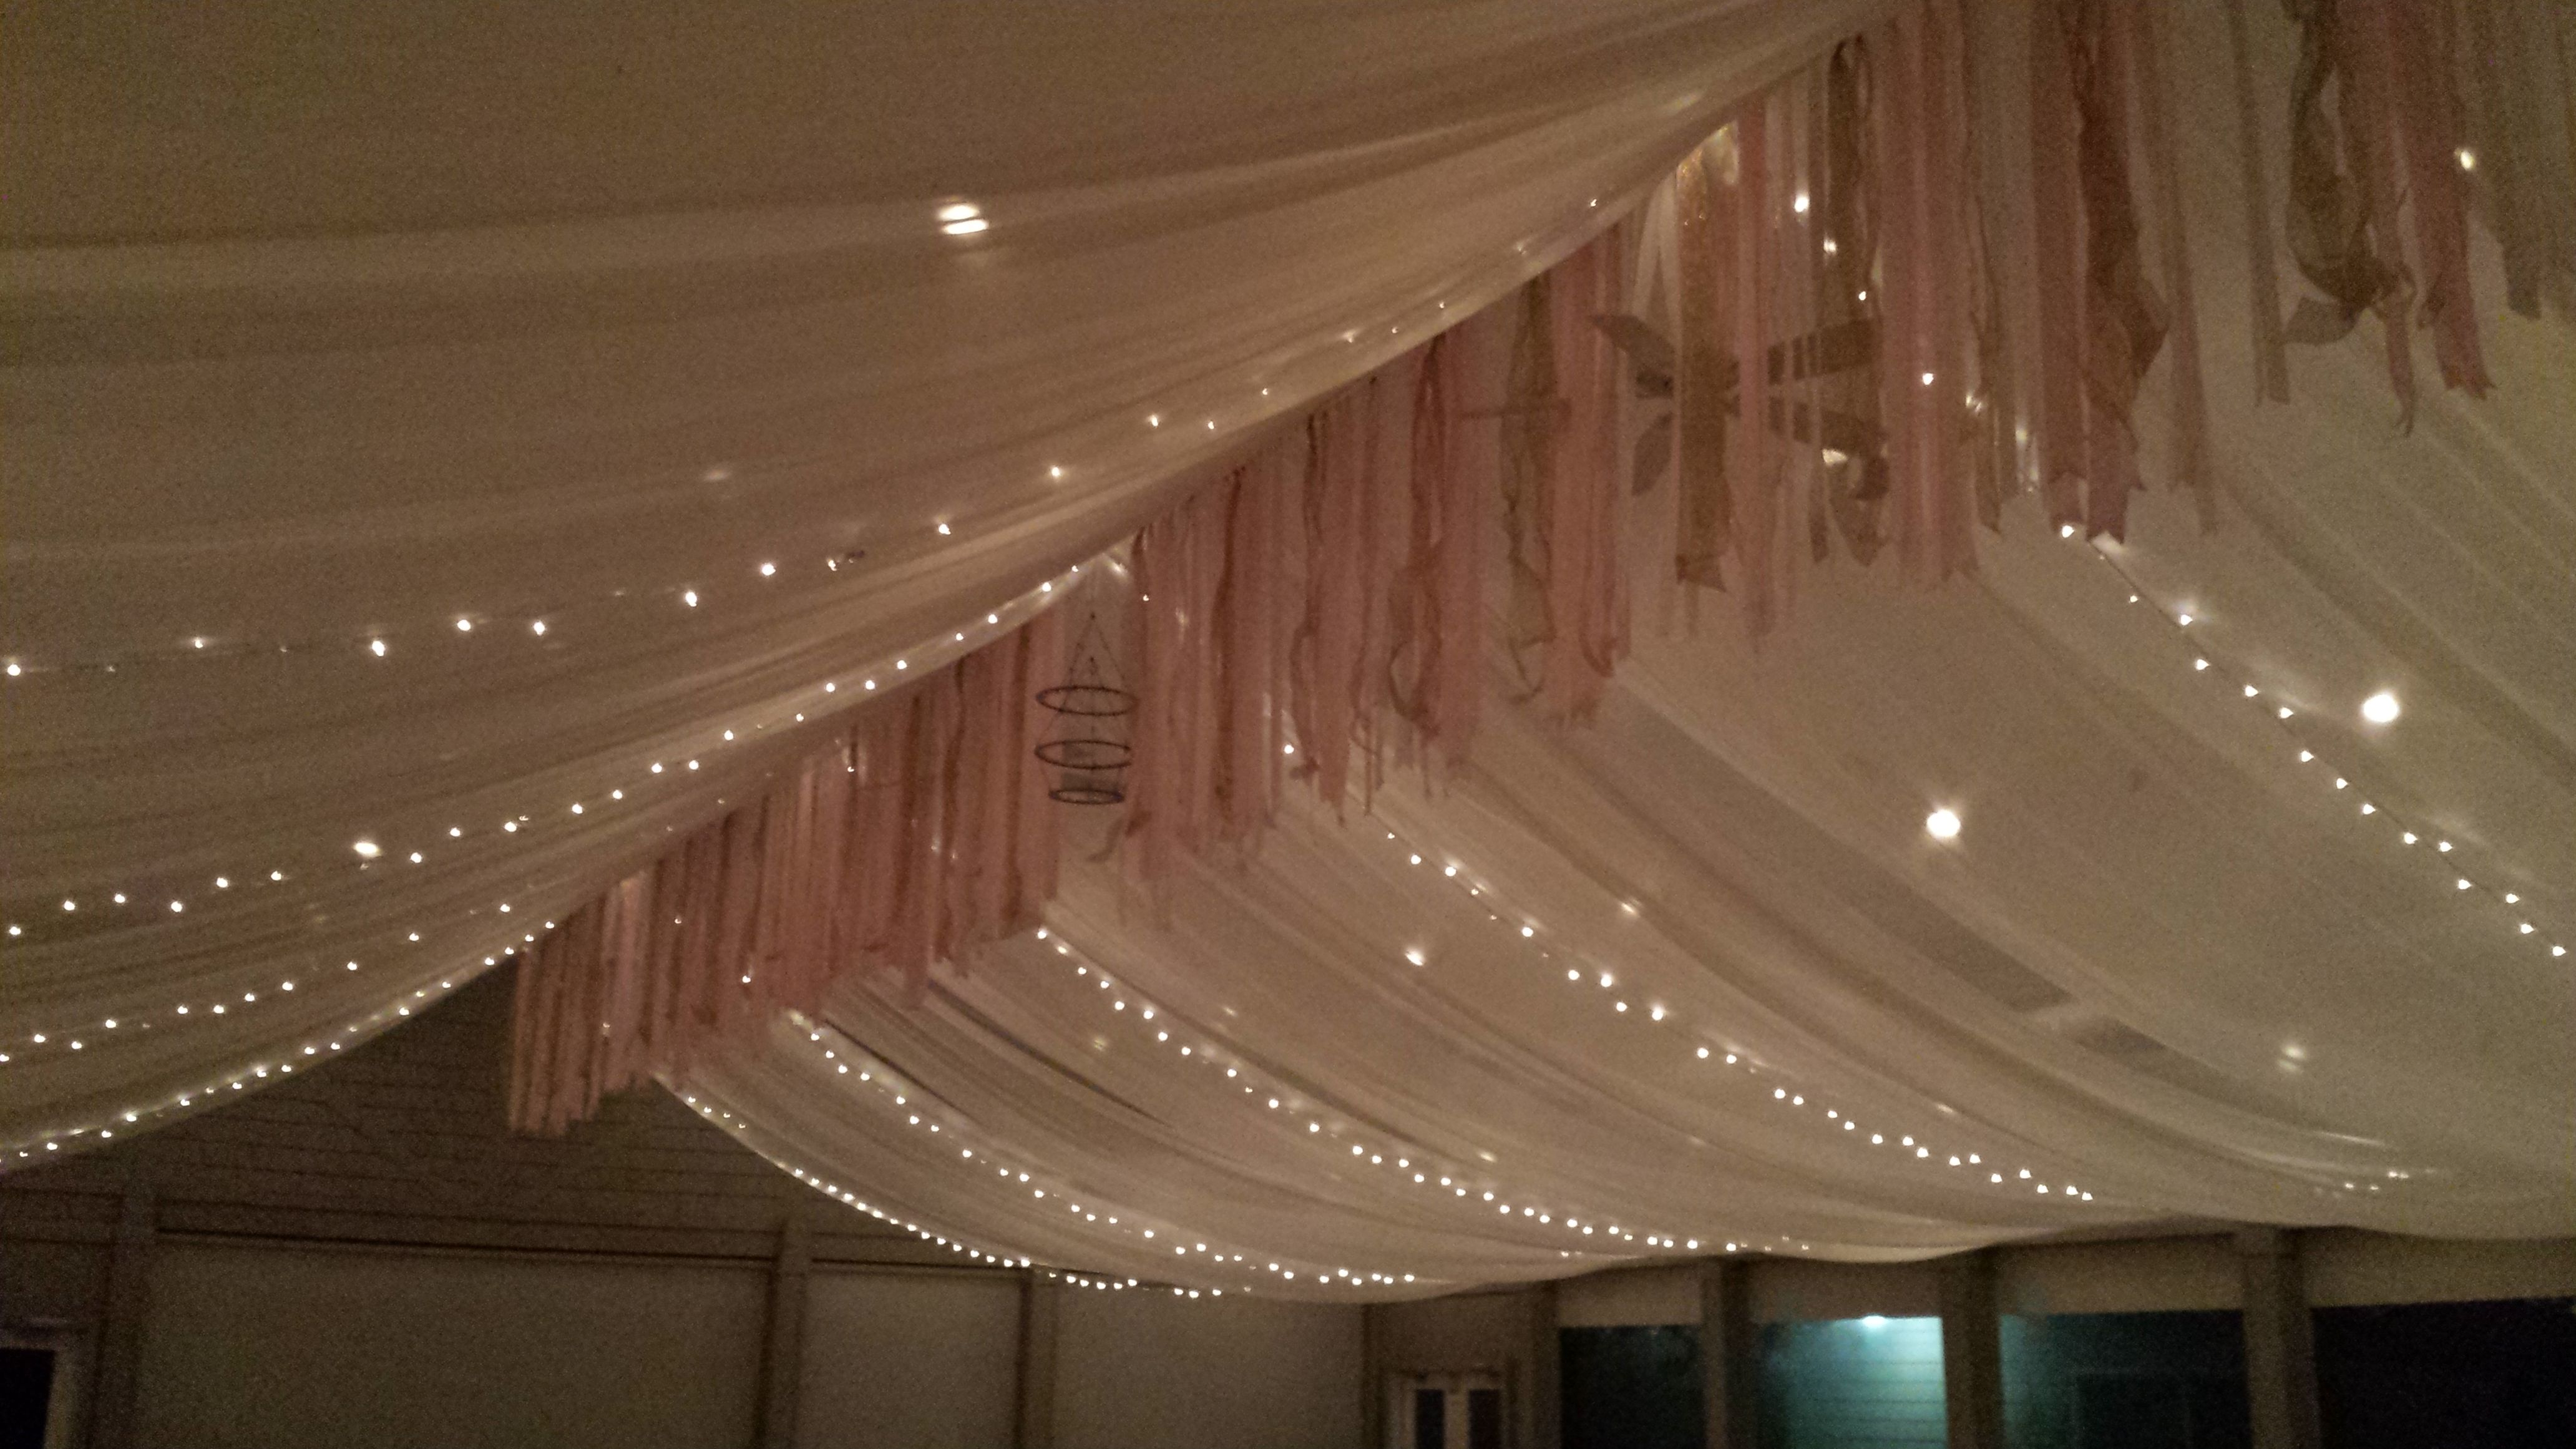 The Ceiling Fully Covered With Sheer White Fabric That Was